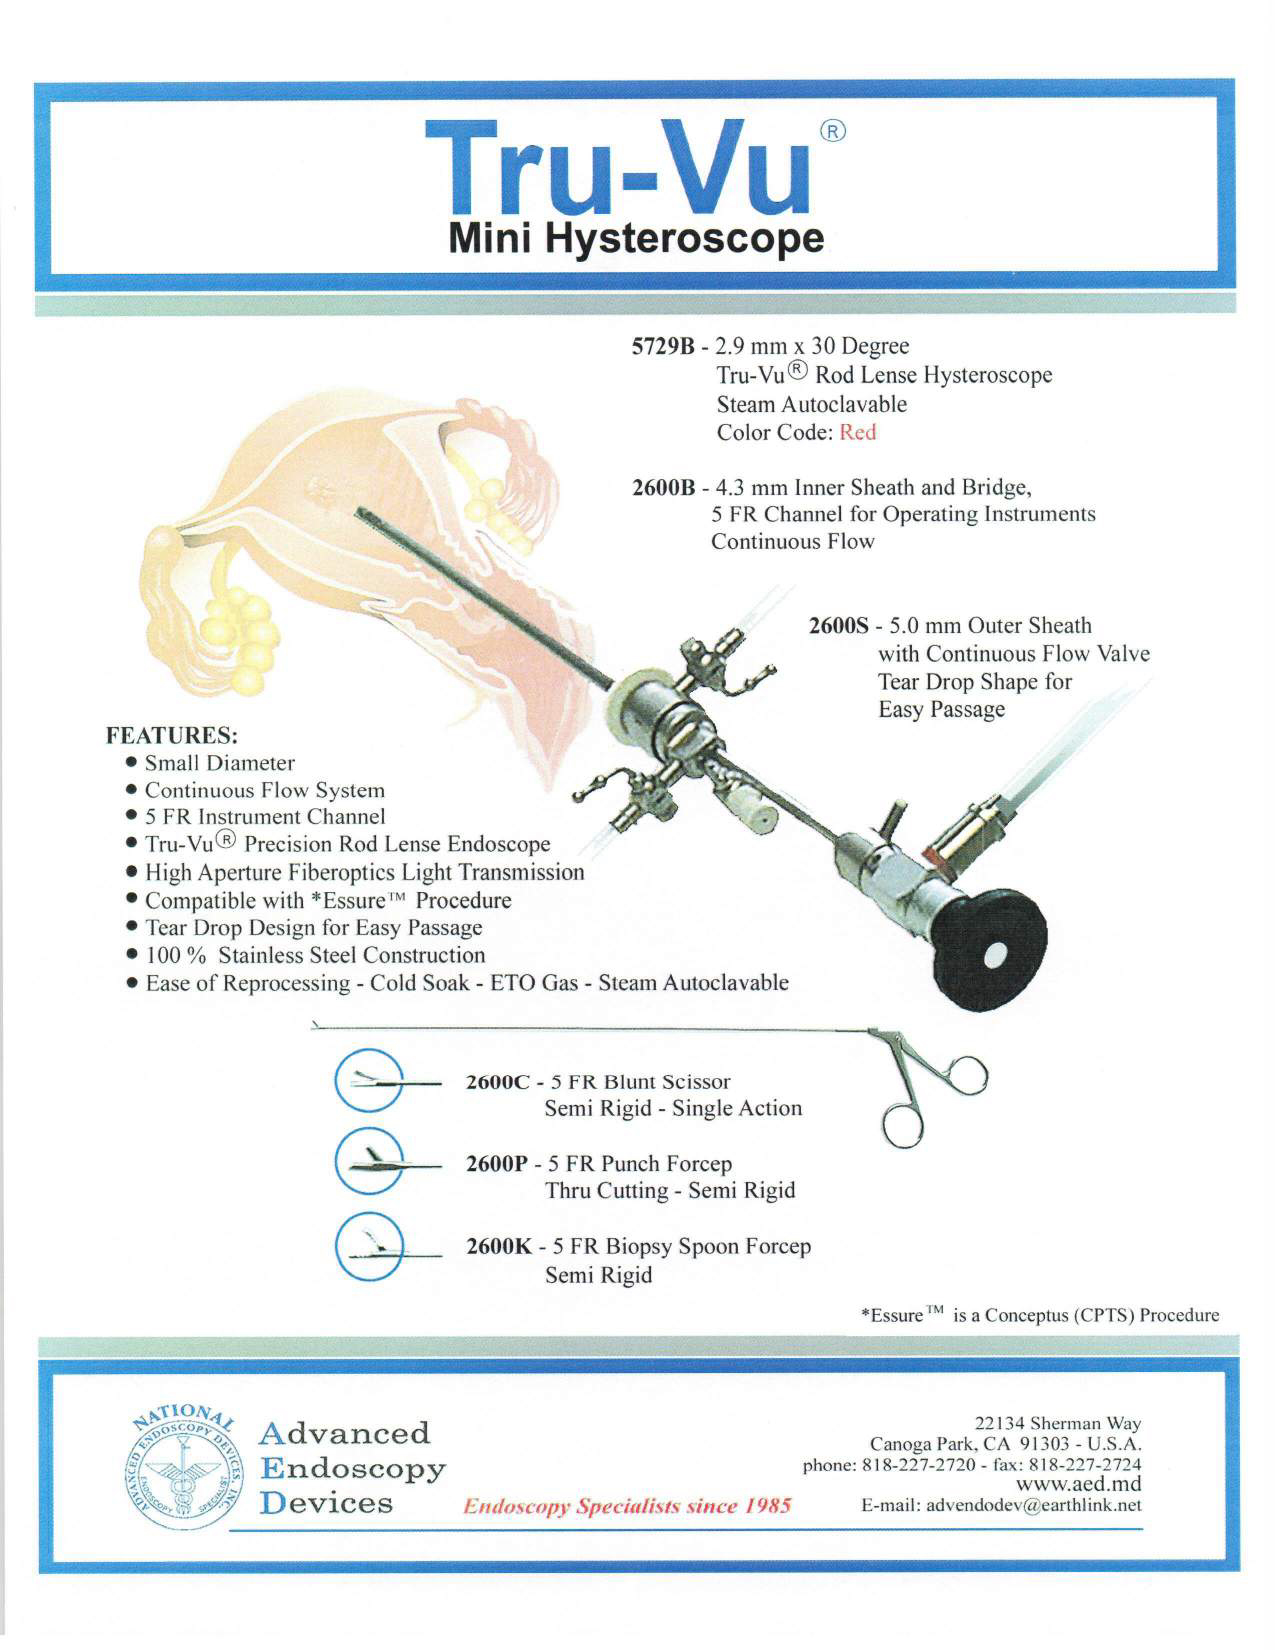 Tru-Vu Mini Hysteroscope Product Page